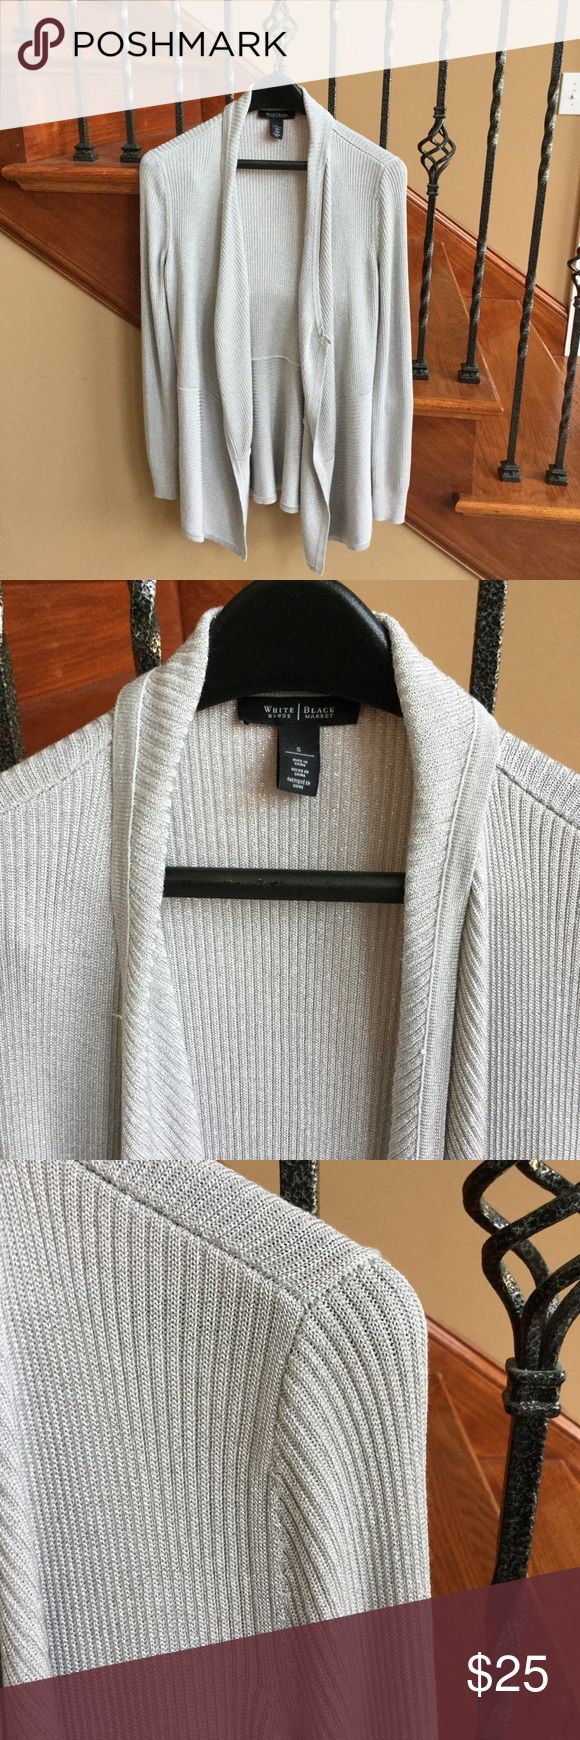 White House Black Market Silver cardigan EUC Silver cardigan from WHBM has longer length and soft open front. Subtle silver to add a little flash to your everyday look or dress up for evening. White House Black Market Sweaters Cardigans